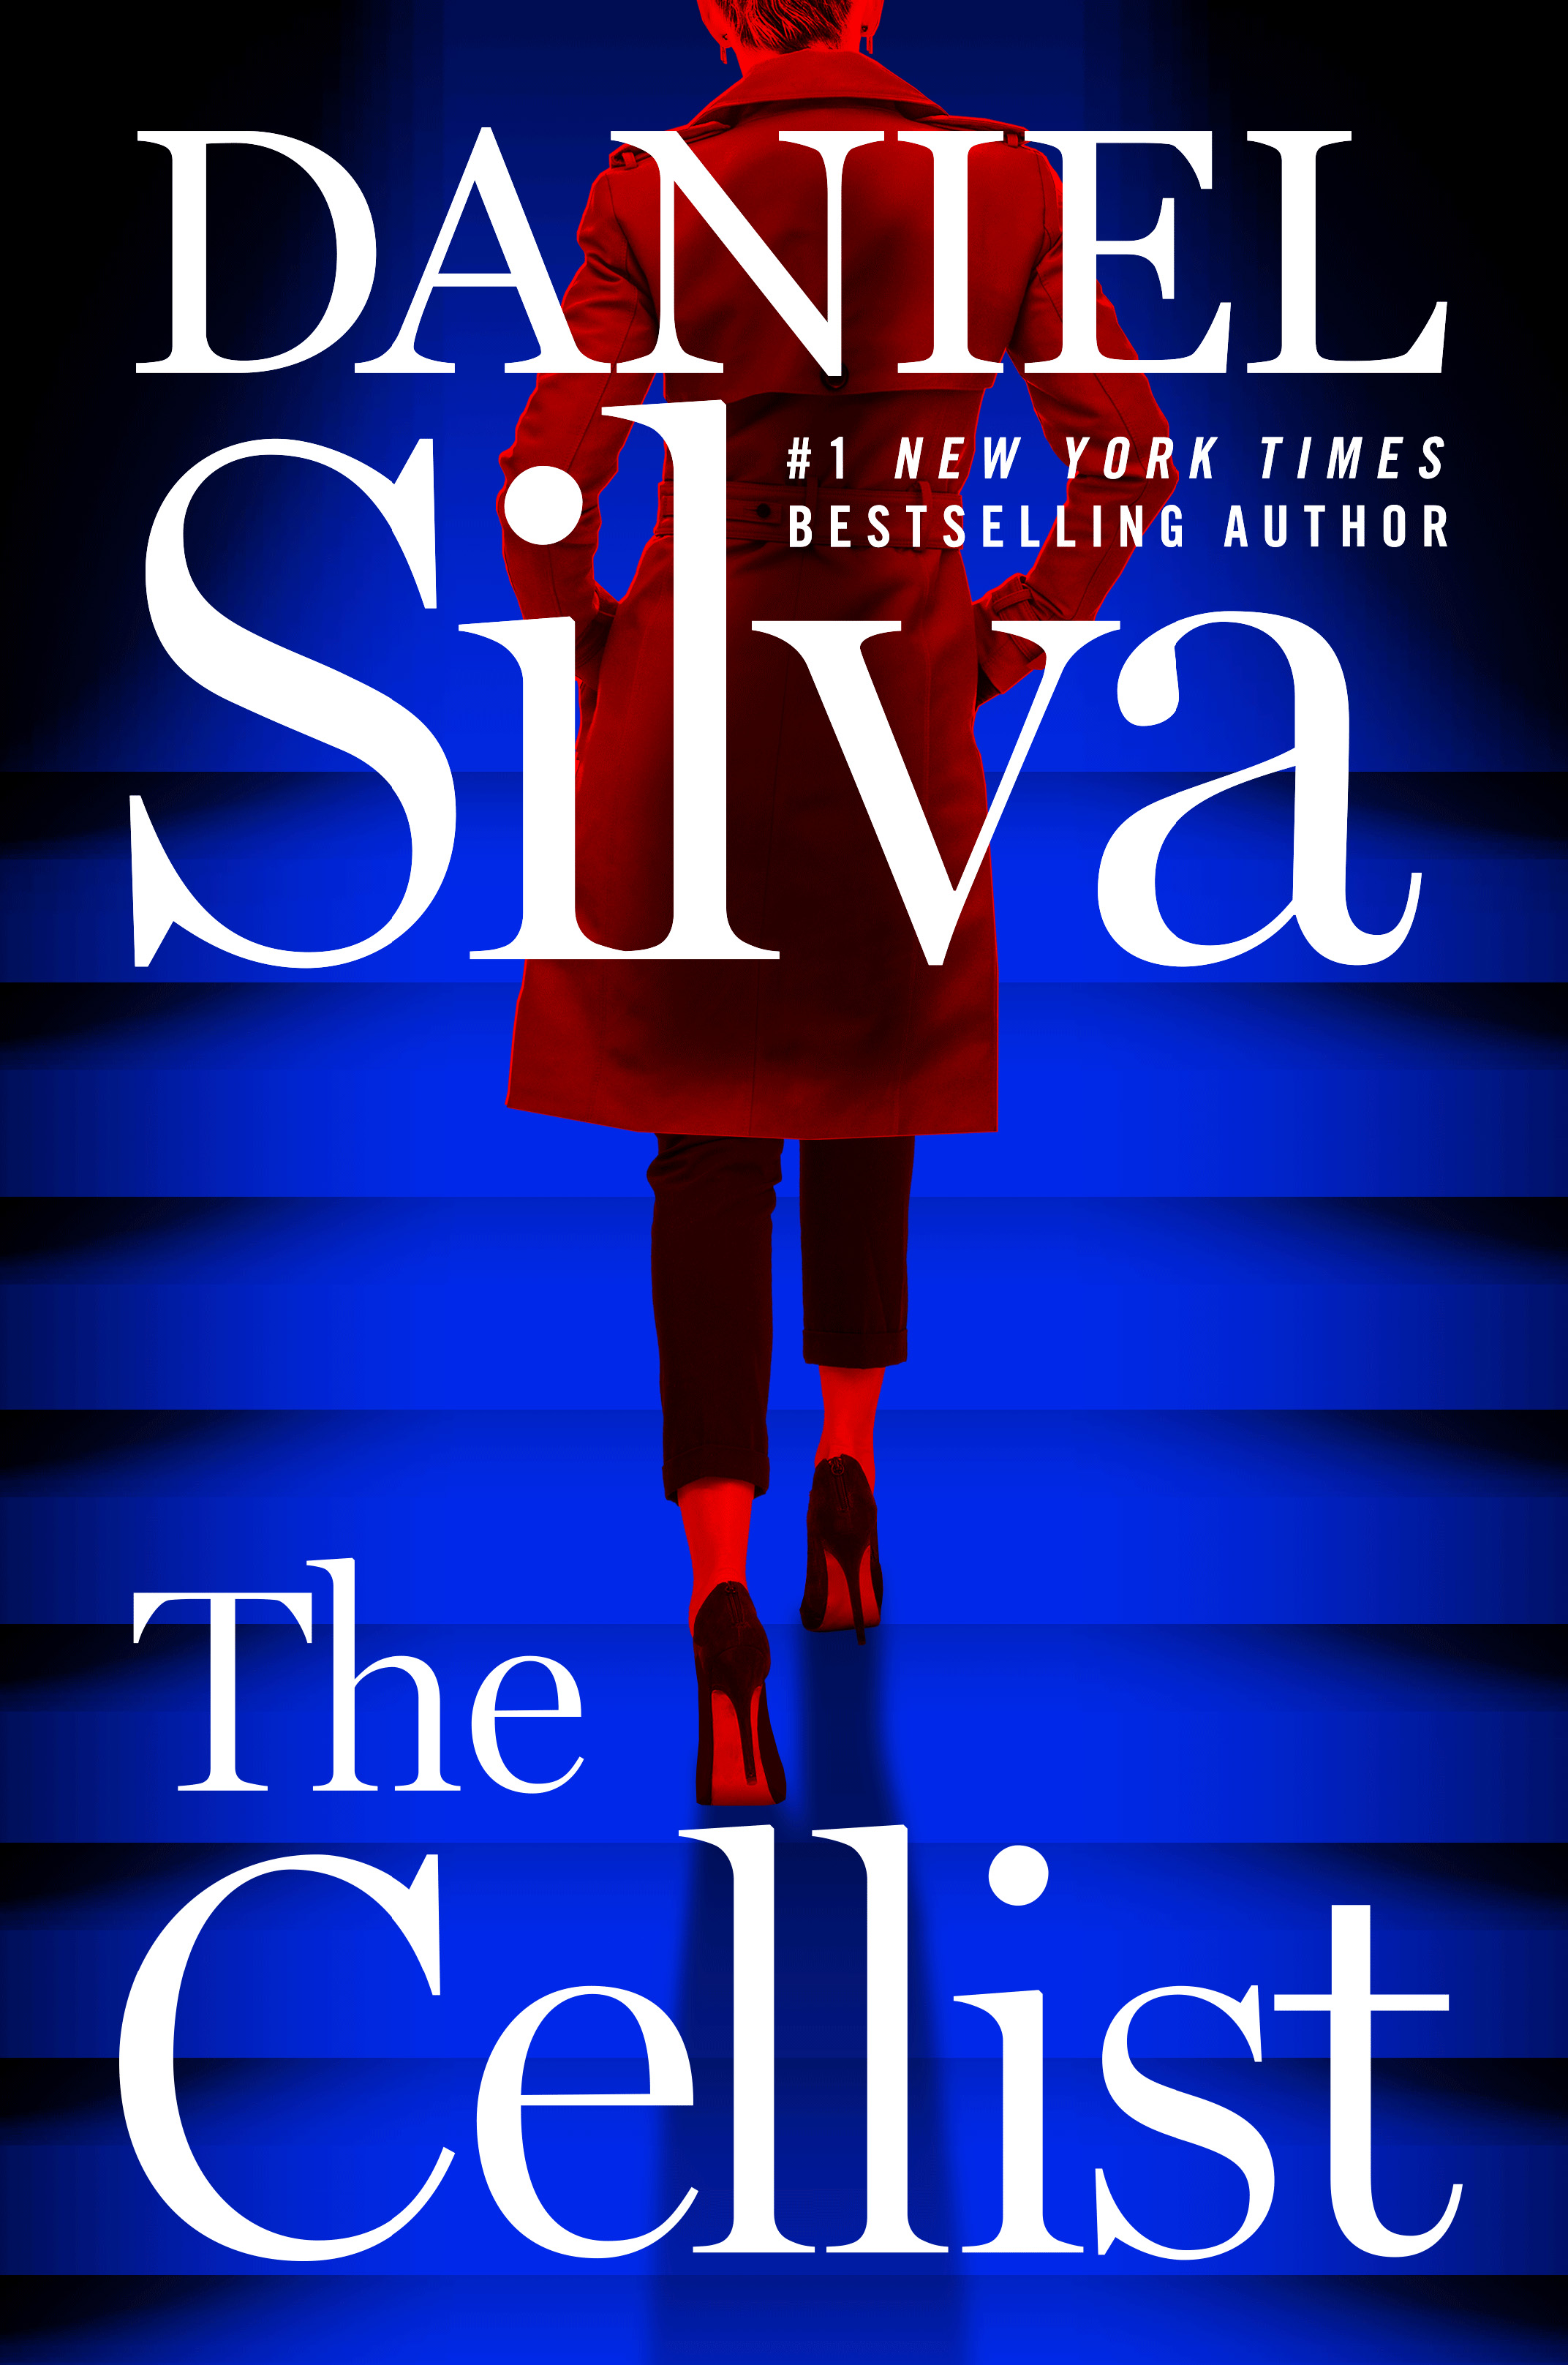 Book cover for The Cellist: A woman wearing a bright red coat and high black heels walks with her back to the reader. The cover is a bright blue that fades to black along the edges.